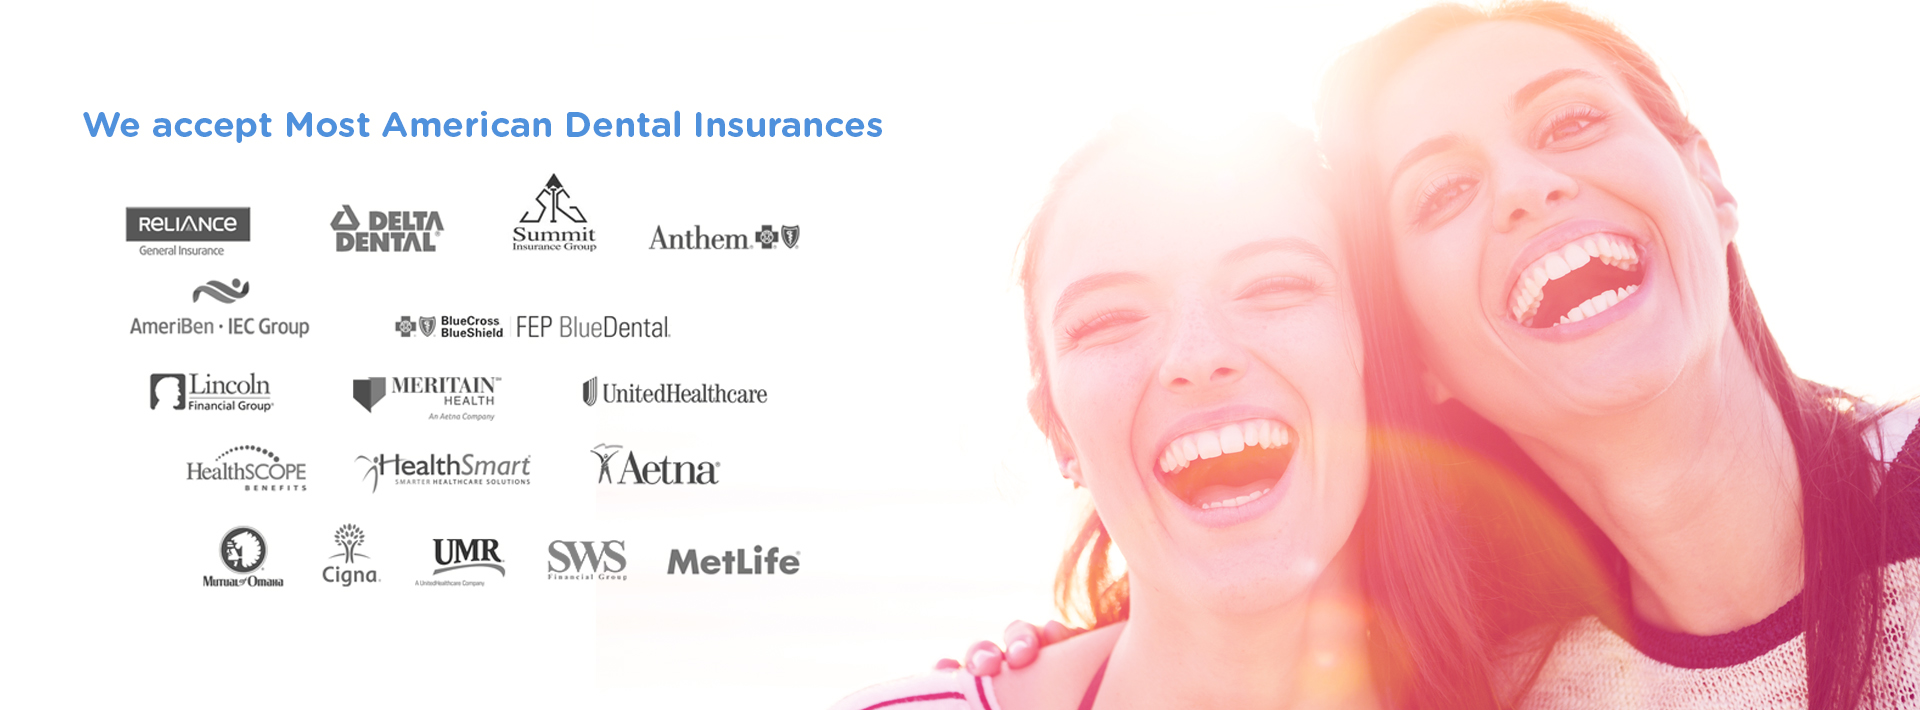 dental-insurances-accept-in-mexico-naco-dental